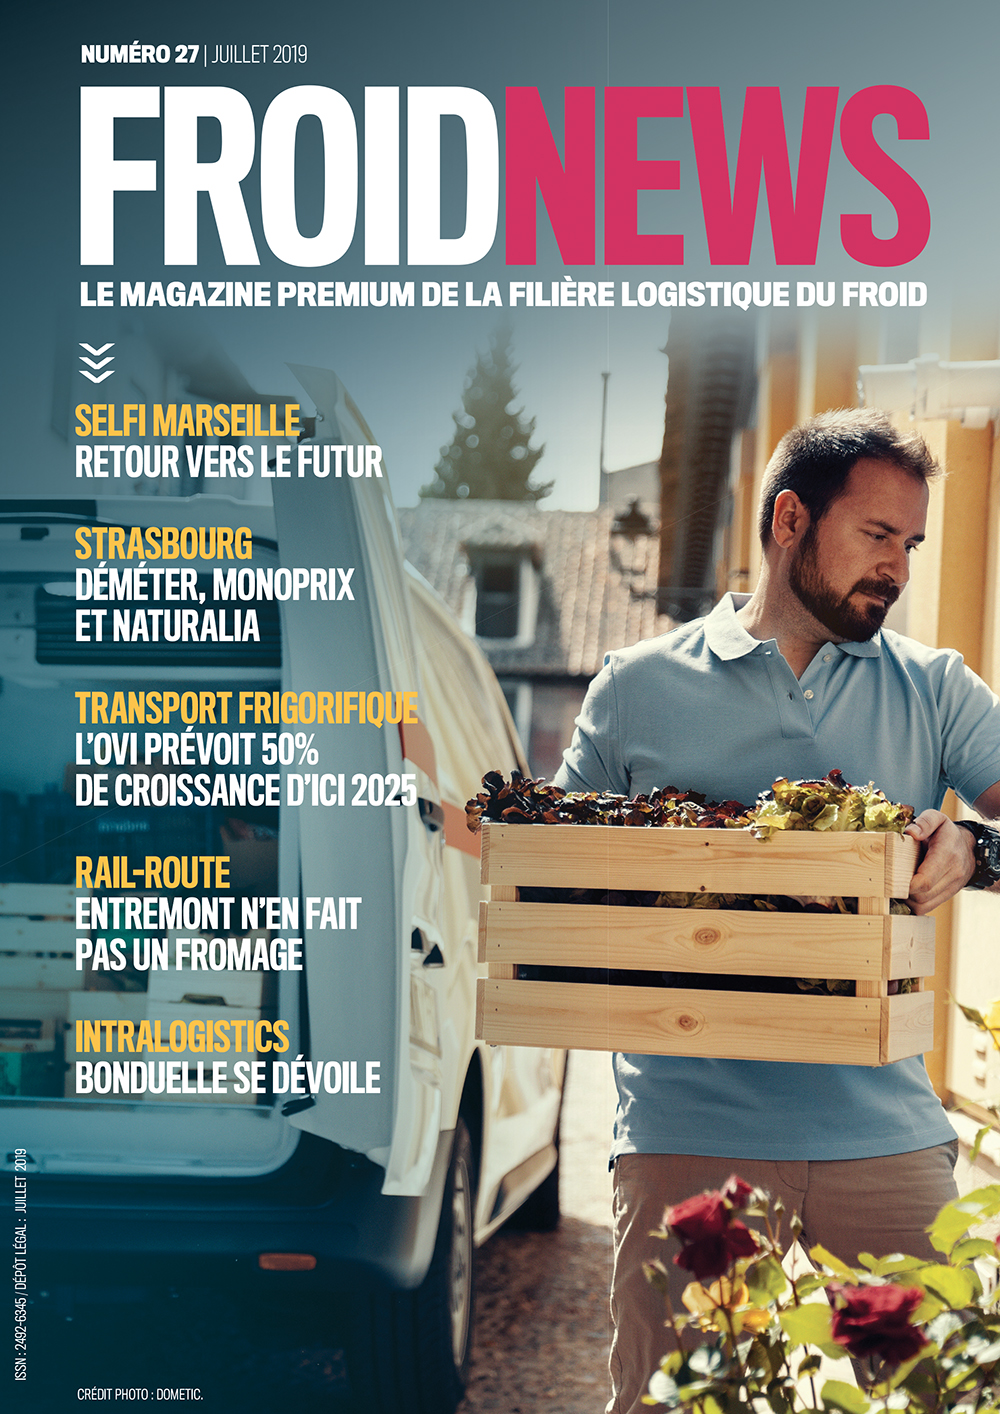 FROIDNEWS 27